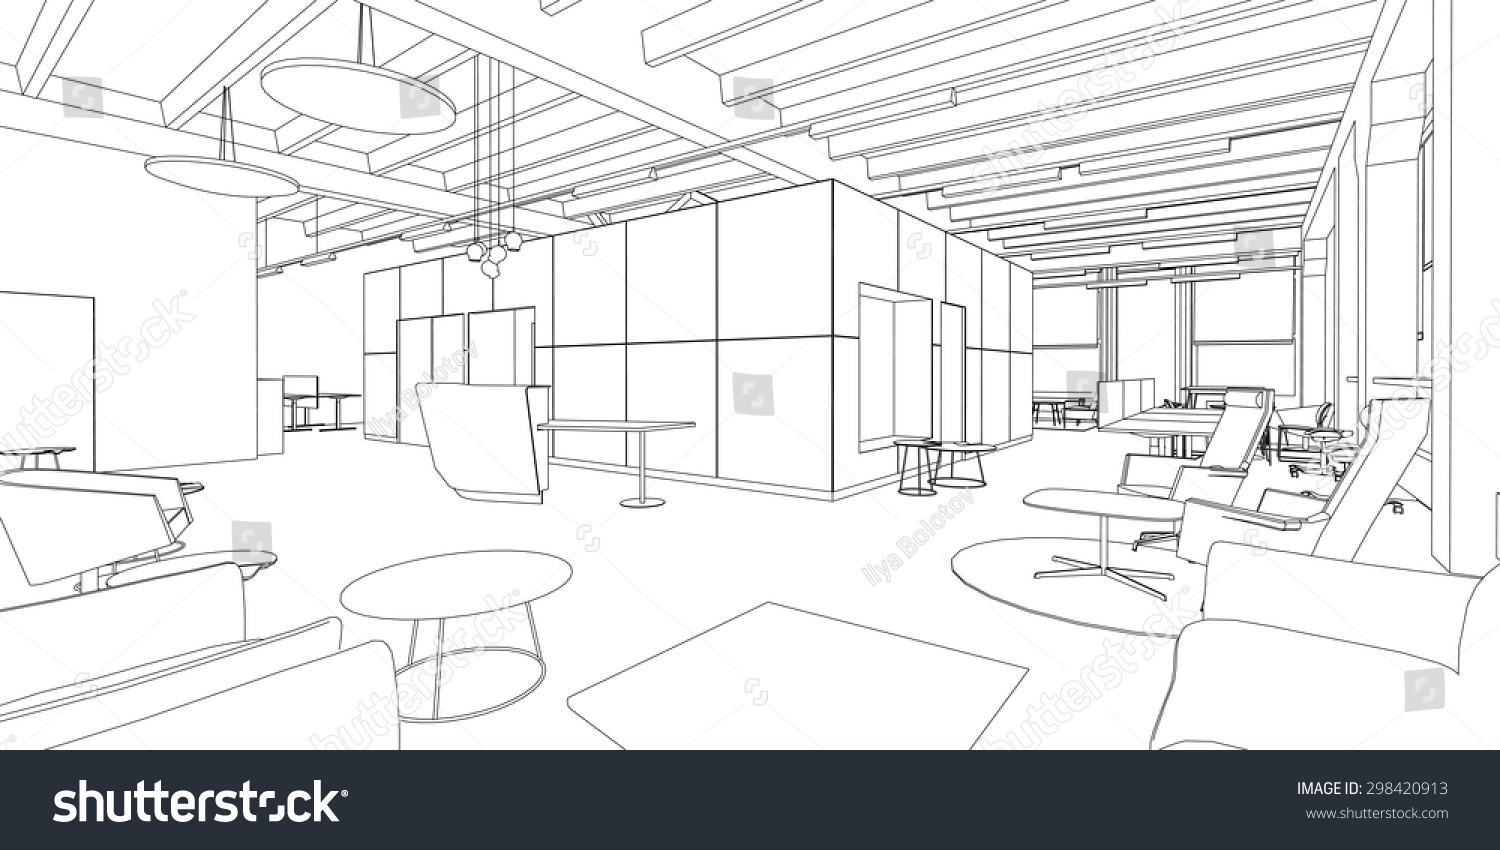 Interior Design Line Art Vector : Line drawing of the office interior on a white background